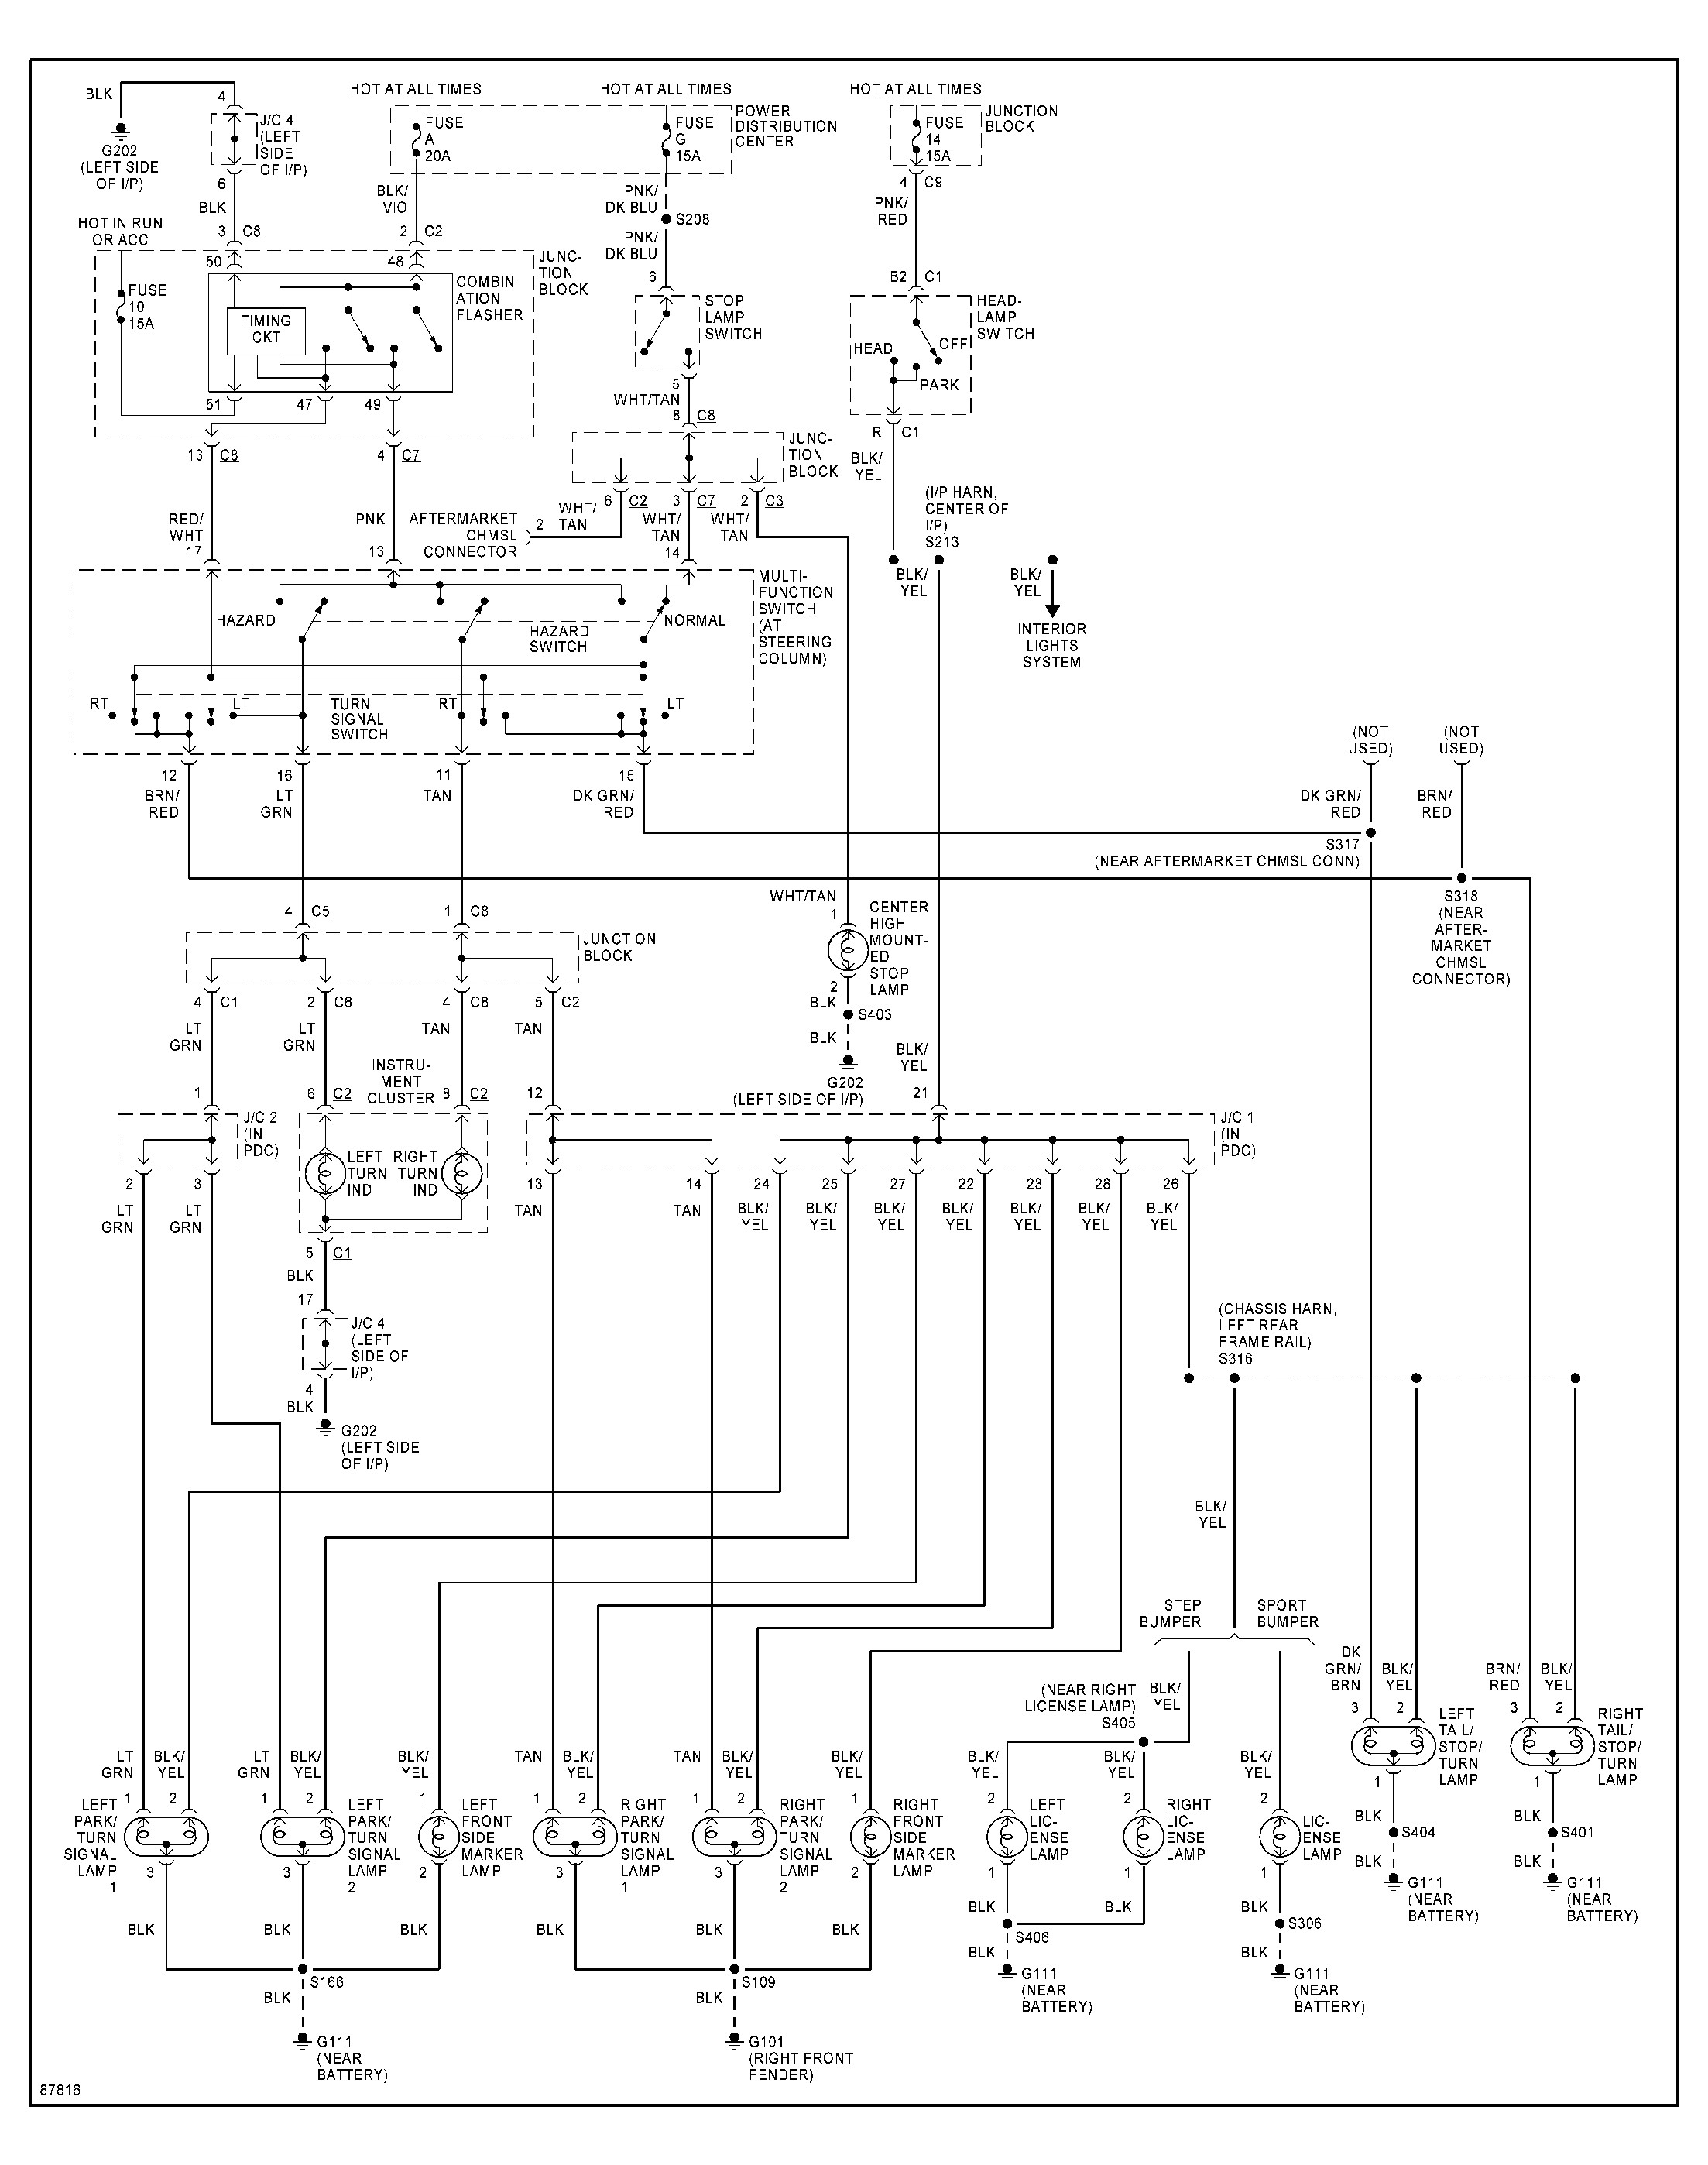 DIAGRAM] Dodge Caravan Stereo Wiring Harness Diagram FULL Version HD  Quality Harness Diagram - PLOTDIAGDRAM.SALVAGNACOIS.FR